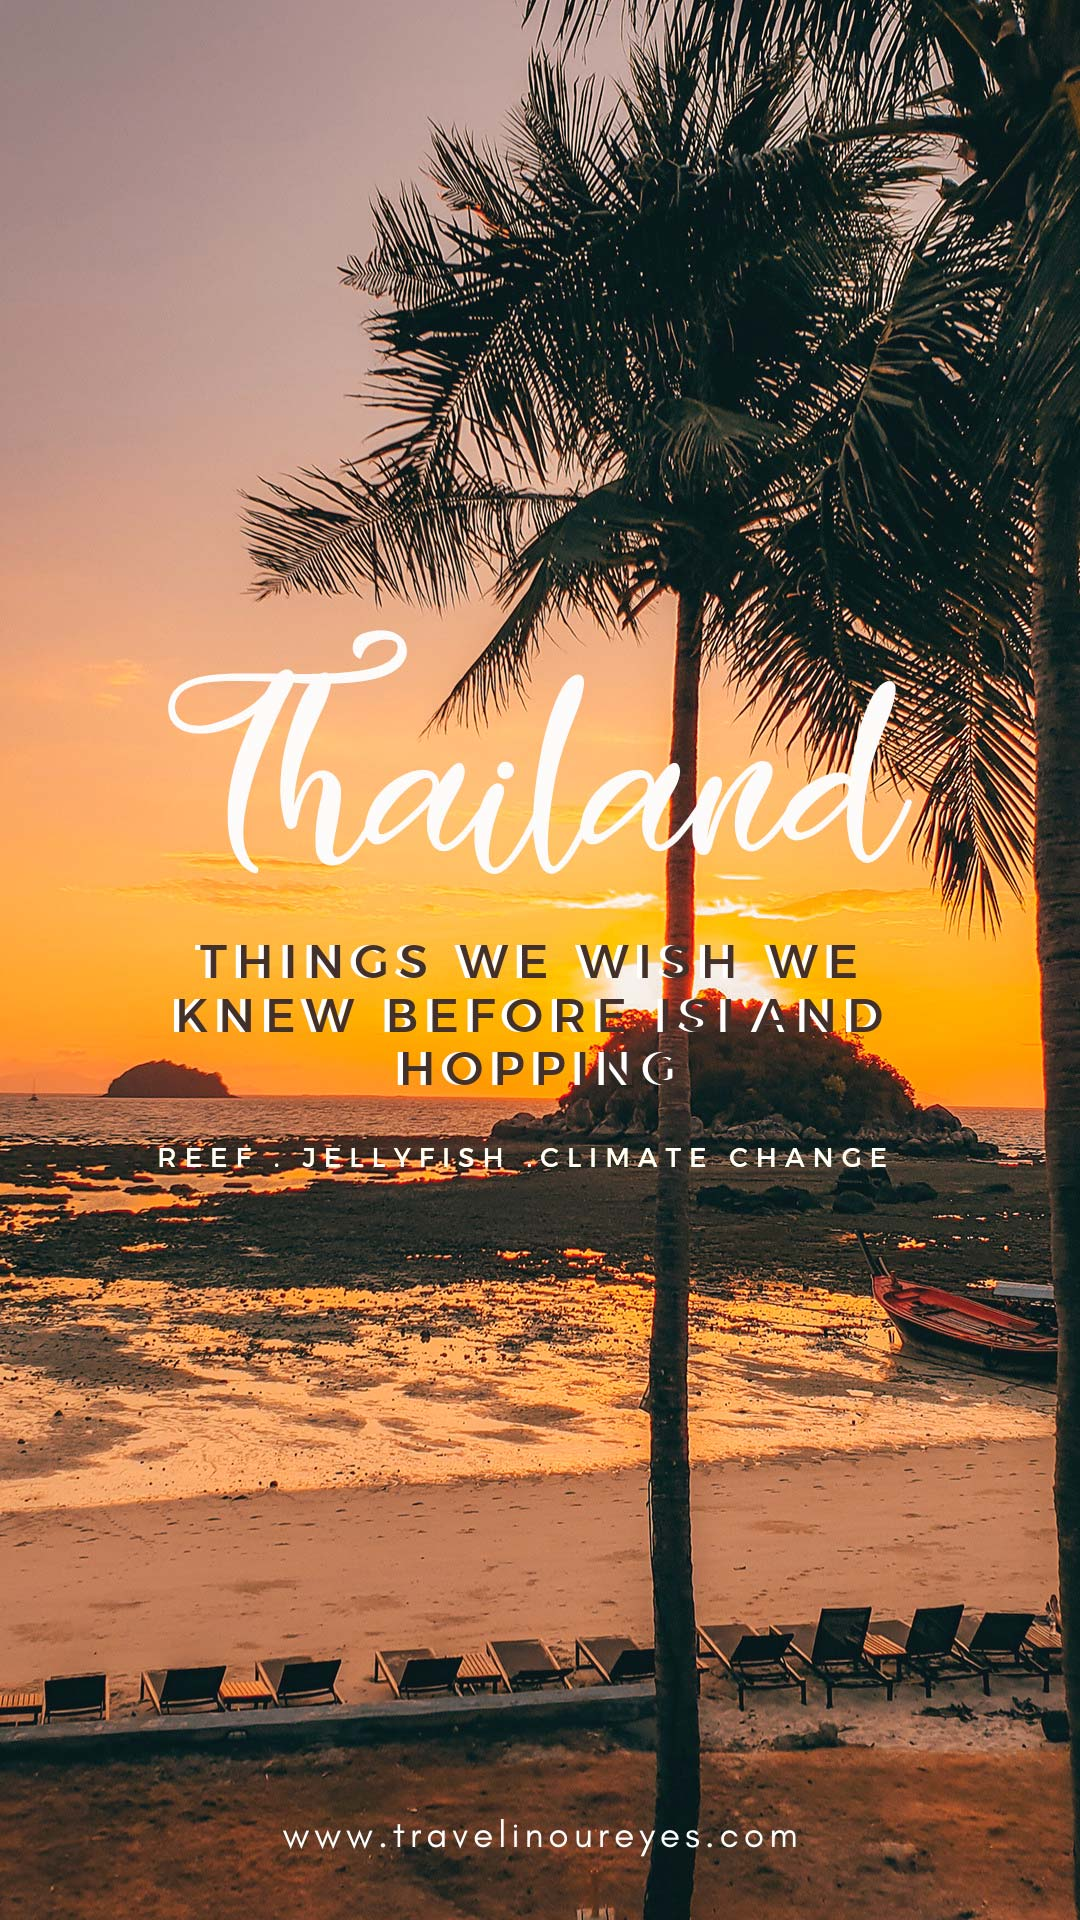 5 Things We Wish We Knew Before Island Hopping in Thailand